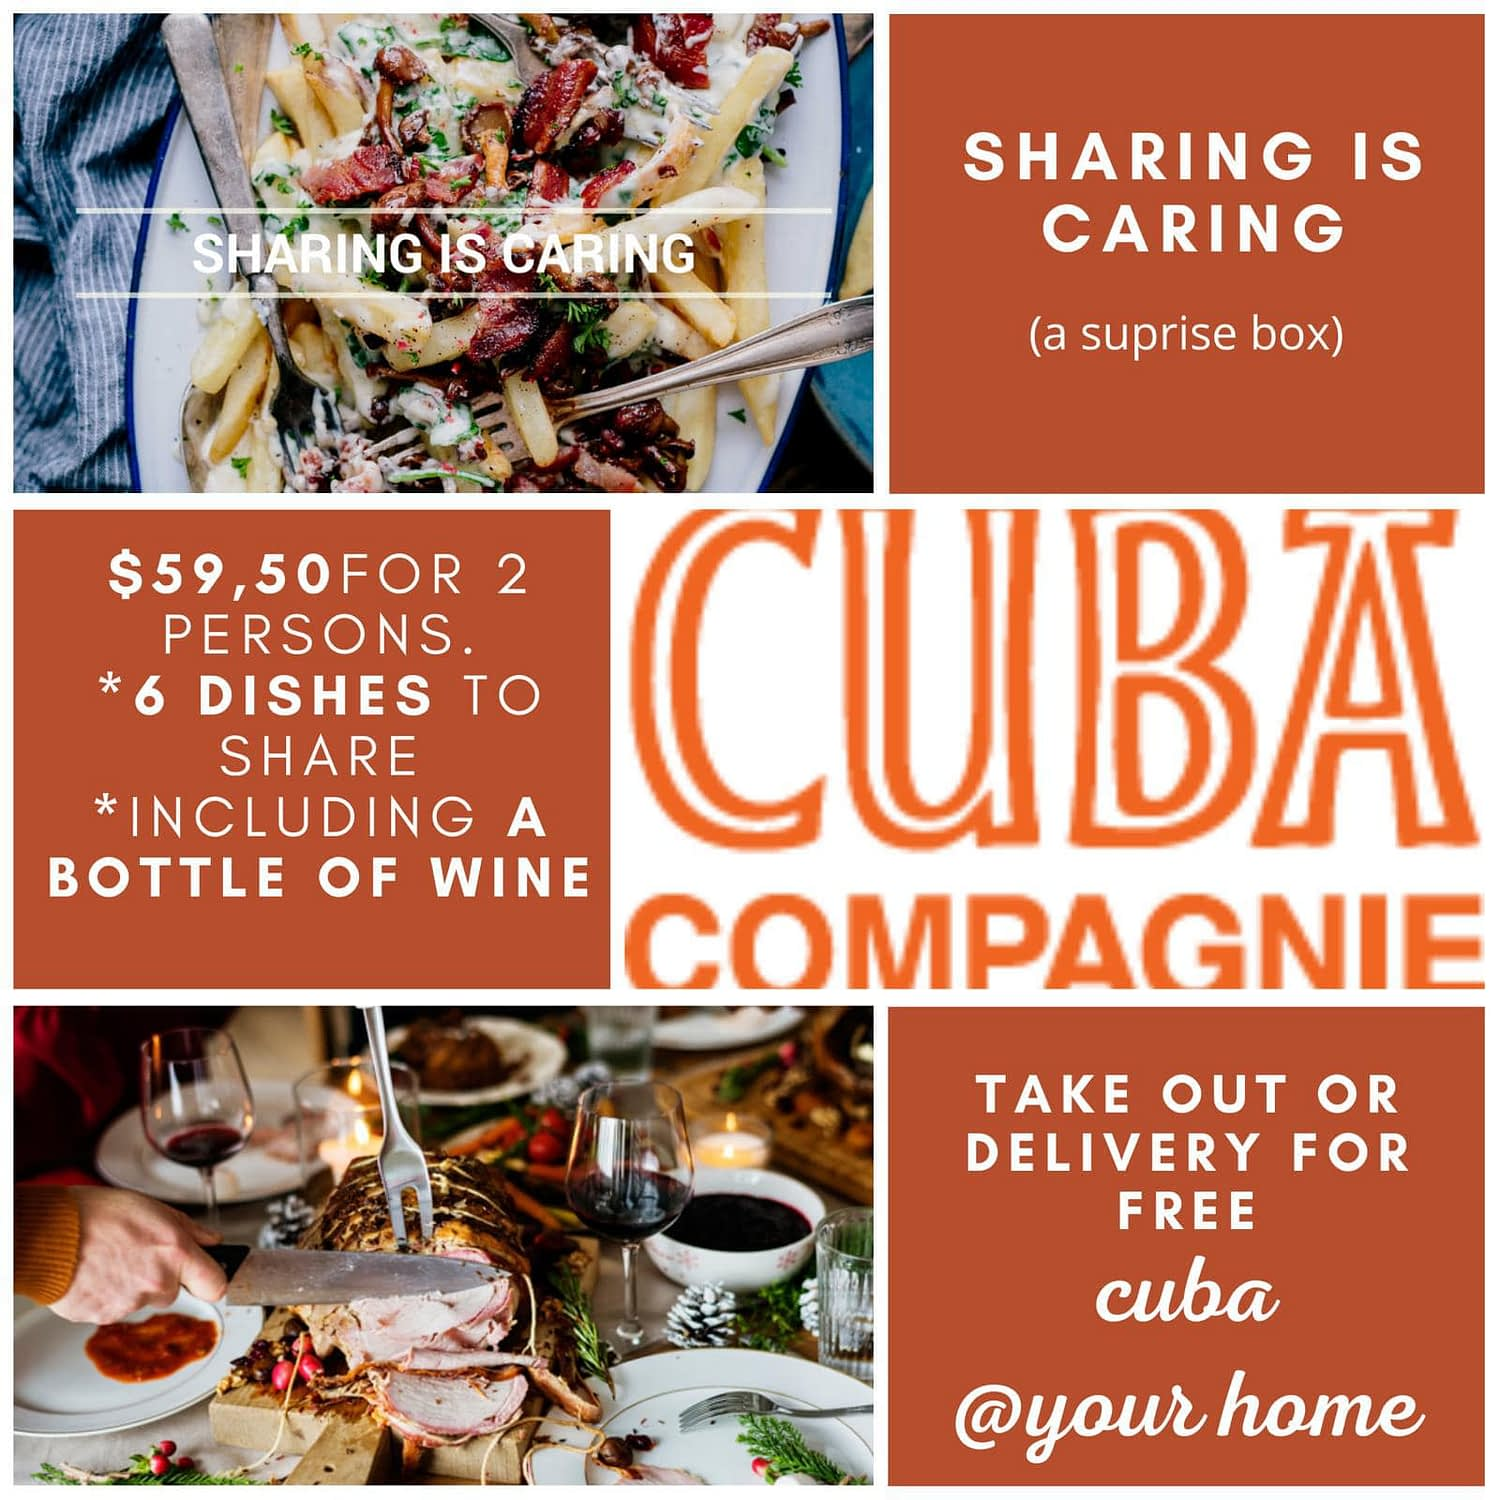 cuba sharing is caring